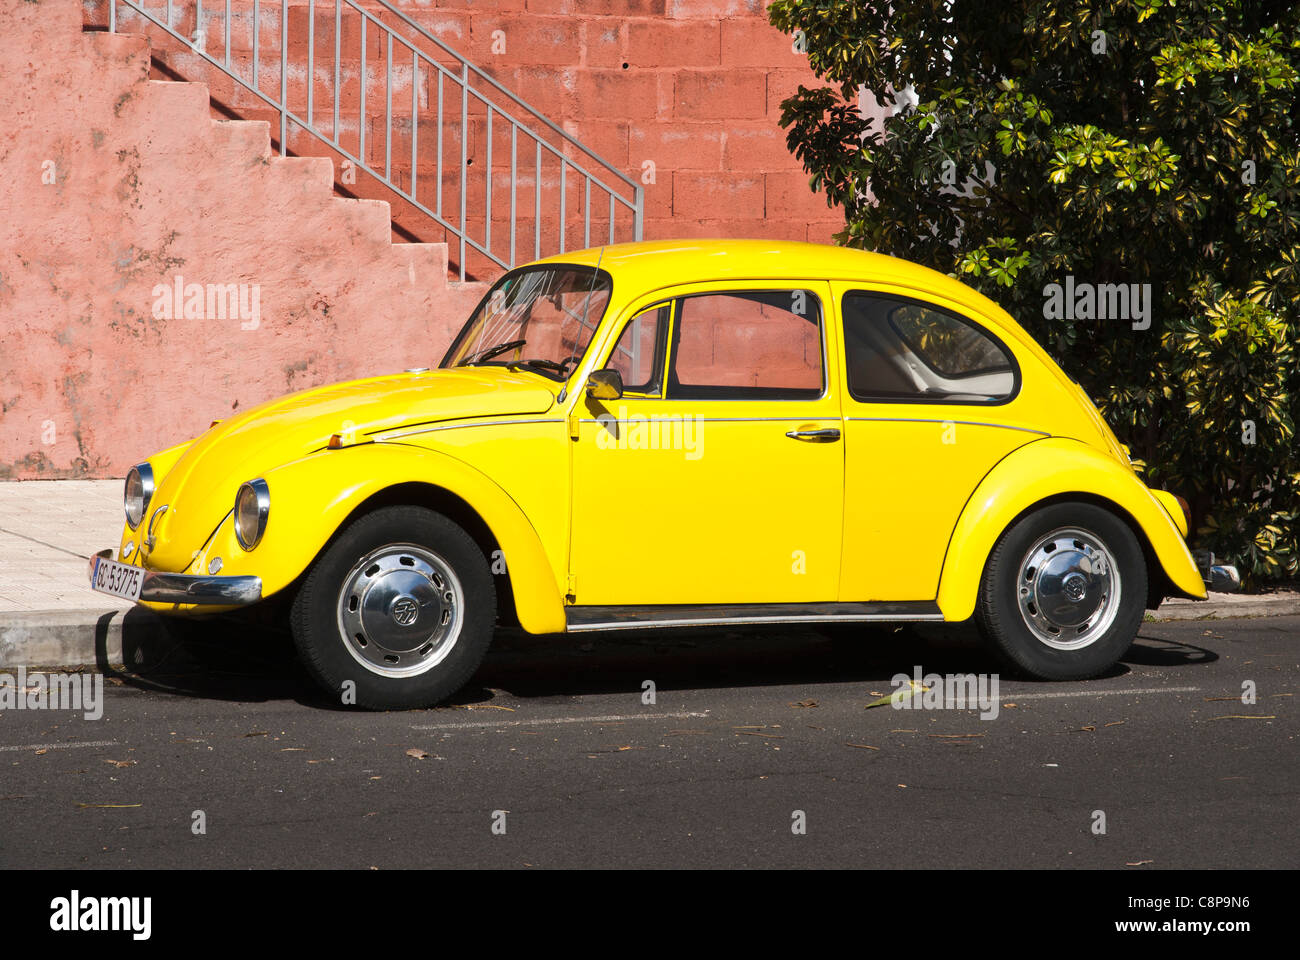 Yellow Volkswagen Beetle. Los Llanos de Aridane, La Palma, Canary Islands. Stock Photo